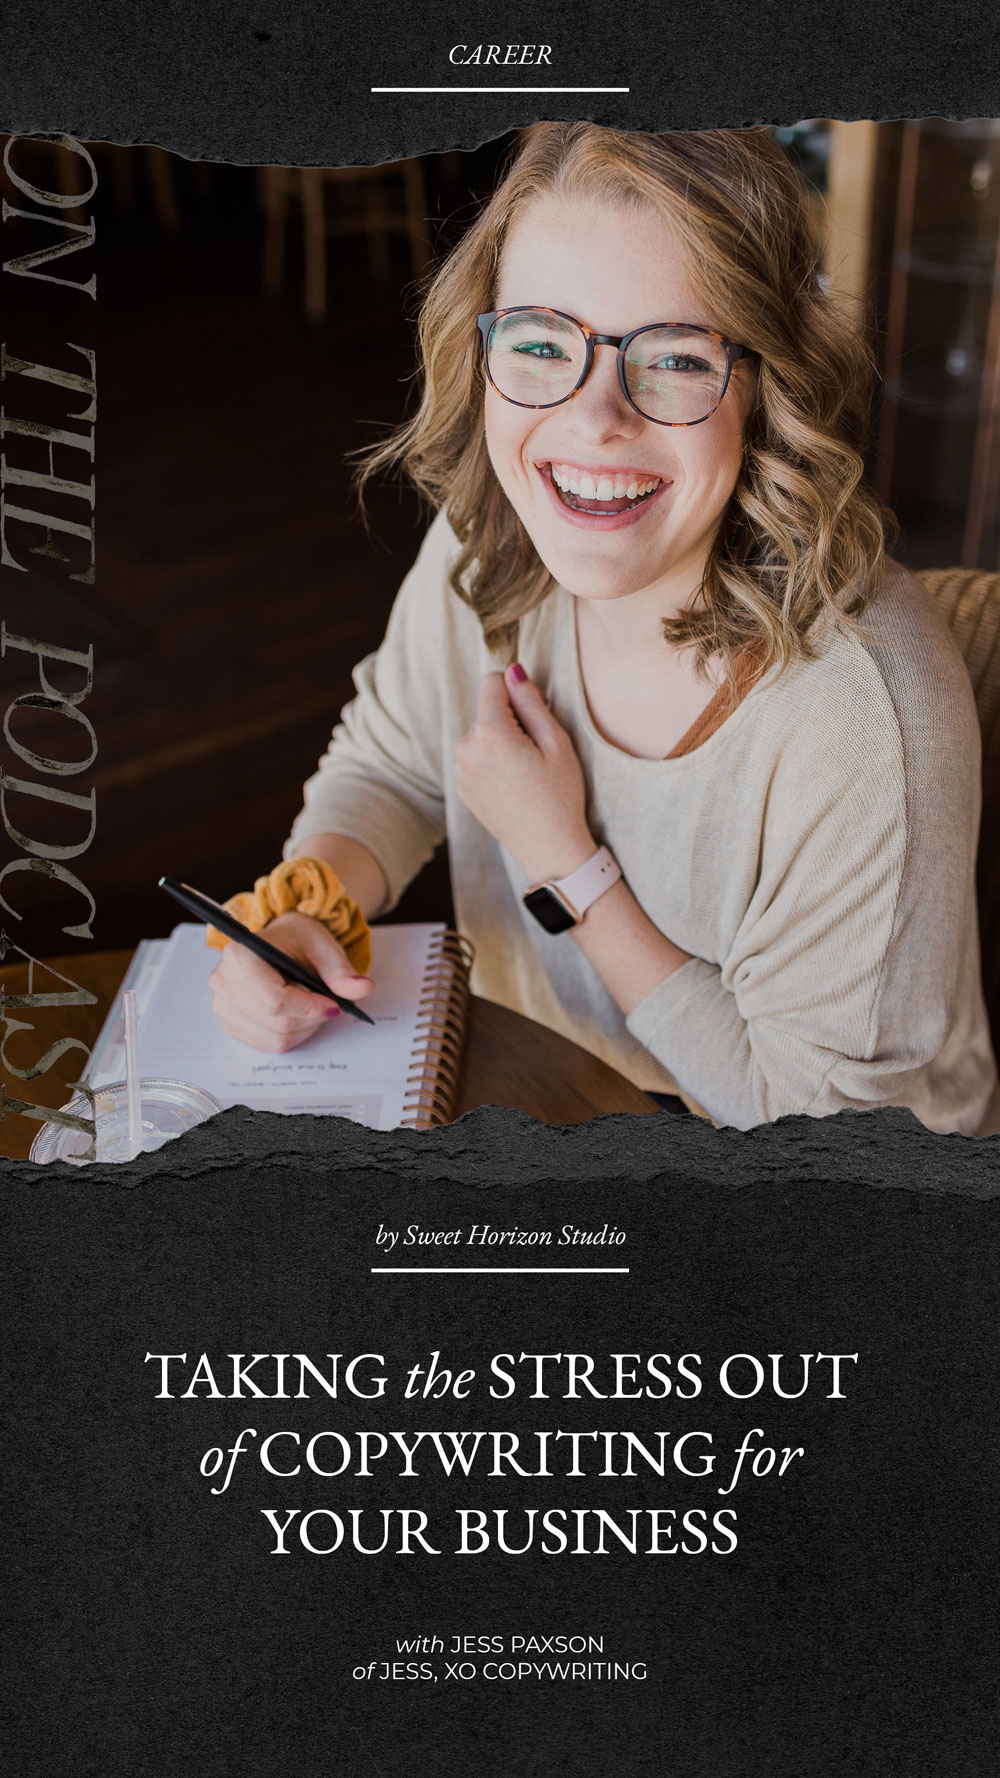 Taking the Stress Out of Copywriting for Your Business with Jess, XO Copywriting from www.sweethorizonblog.com